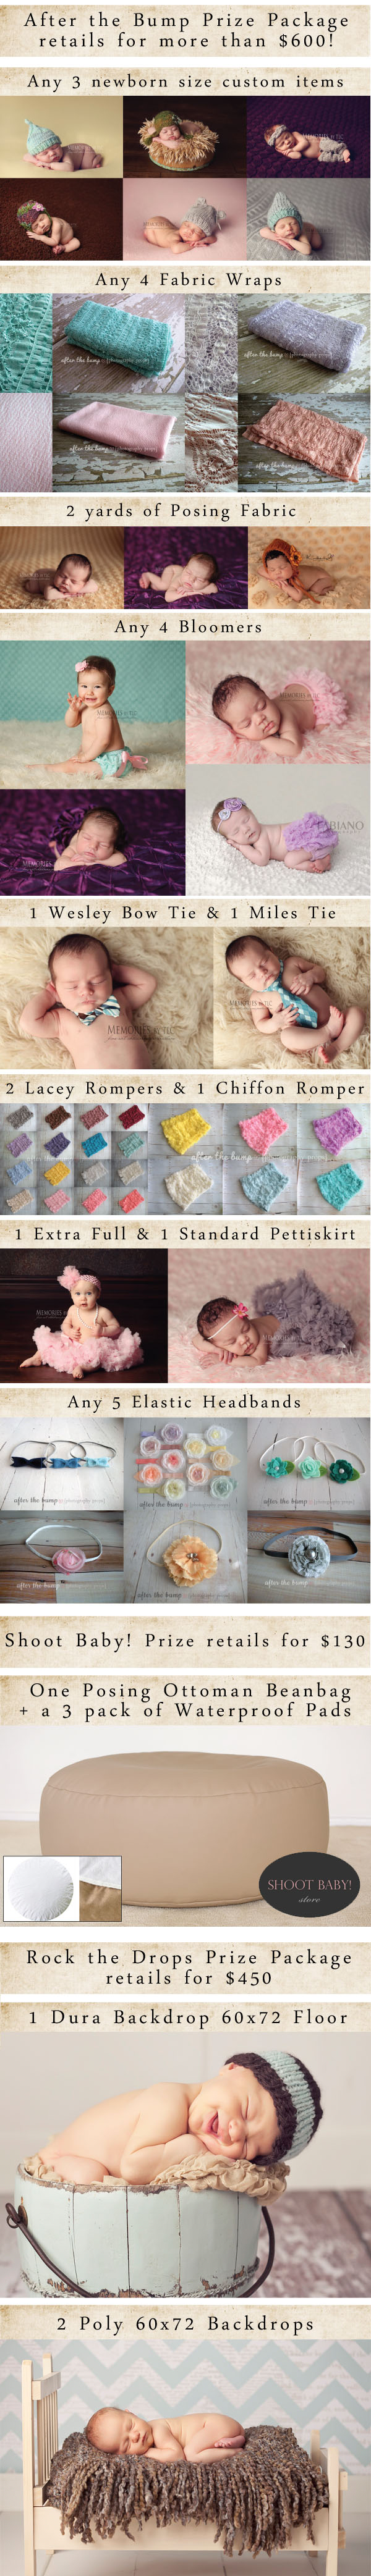 newborn giveaway Giveaway: The Ultimate Newborn Photographer Prop Prize Pack   $1,200 Value